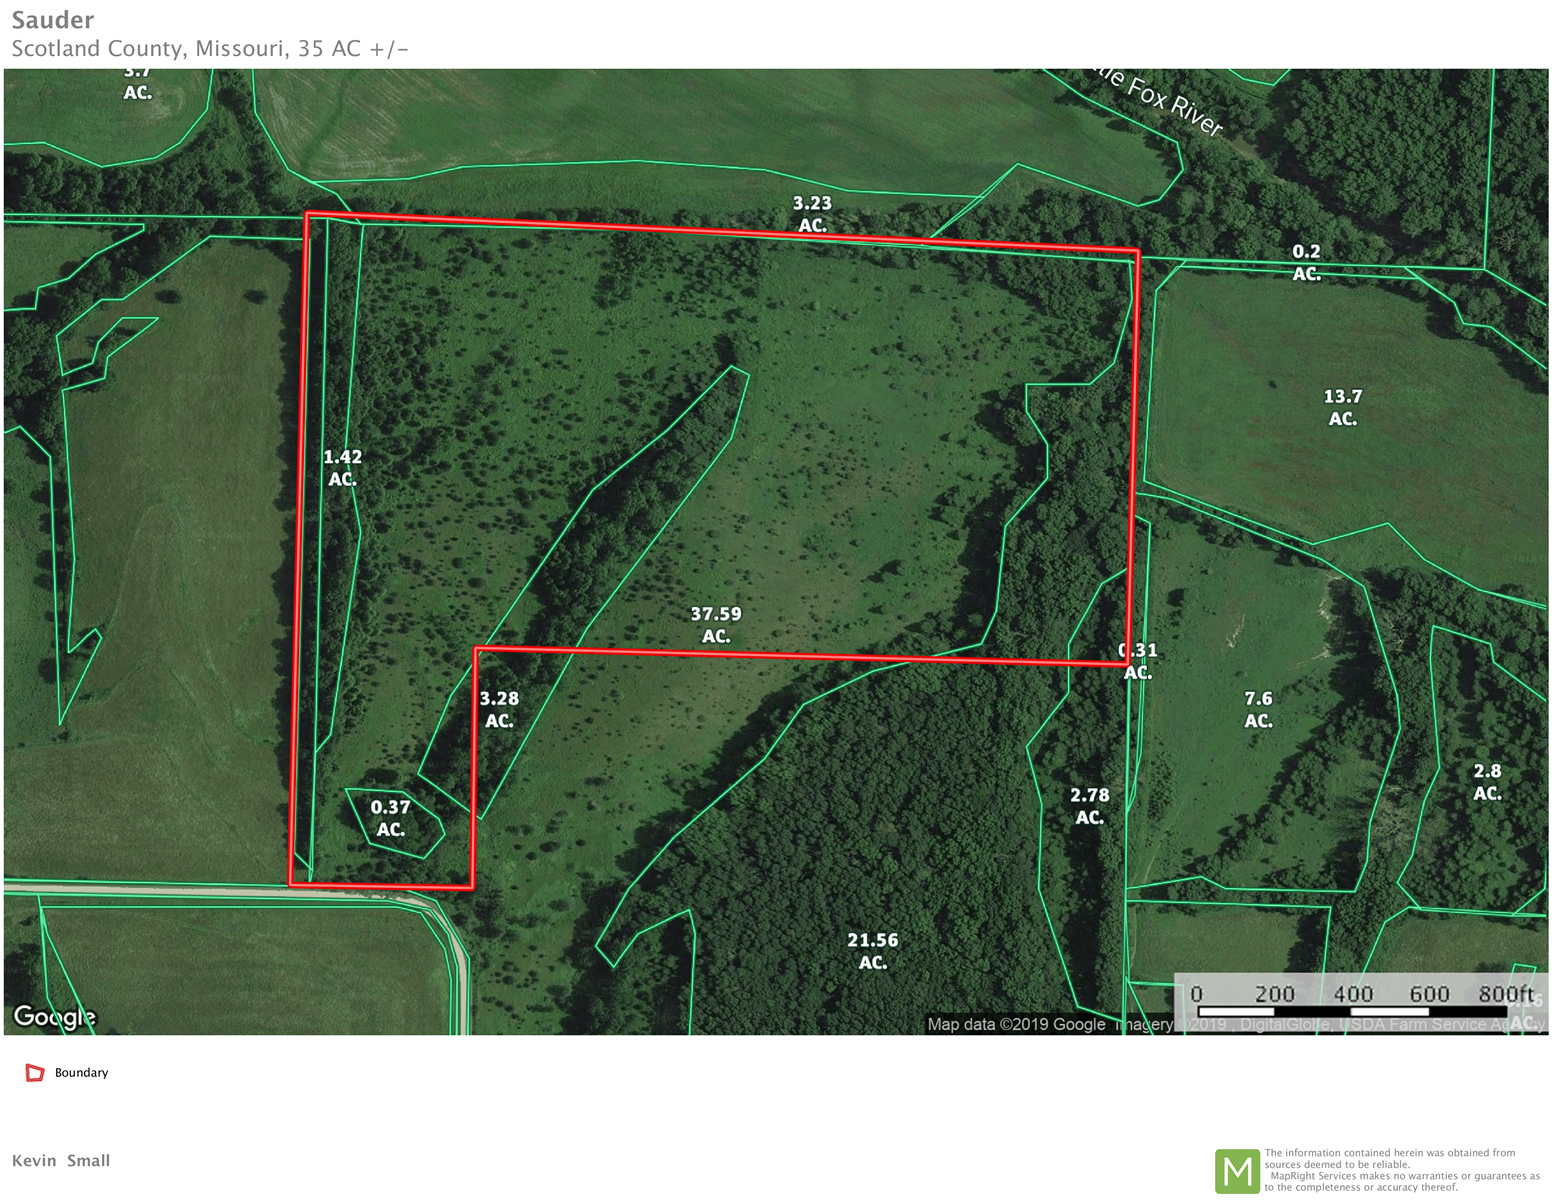 NORTHERN MO RECREATIONAL LAND FOR SALE, SMALL HUNTING TRACT